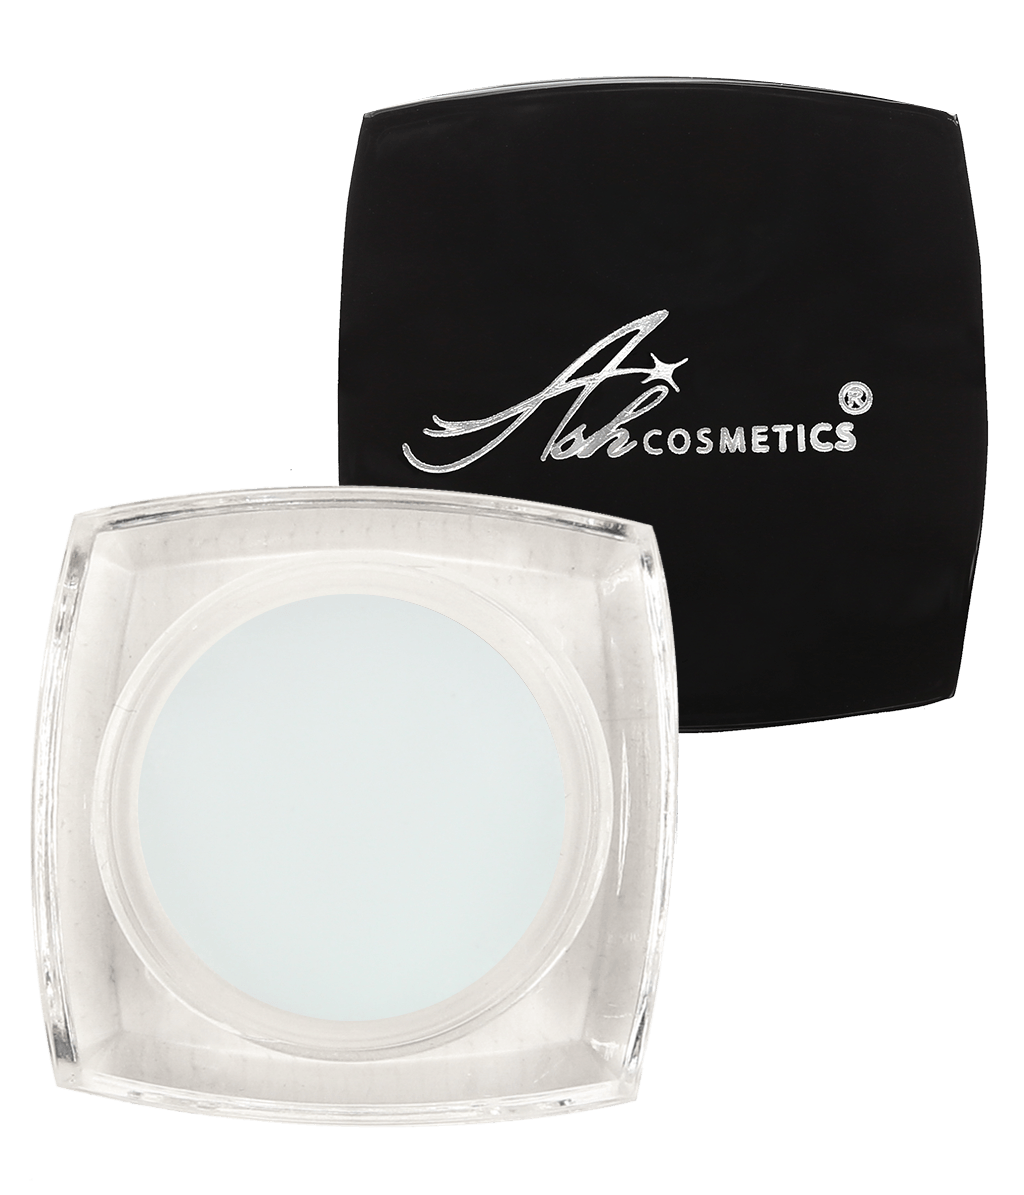 Long-wear HD Gel liners Shade White Agate - Ashcosmetics